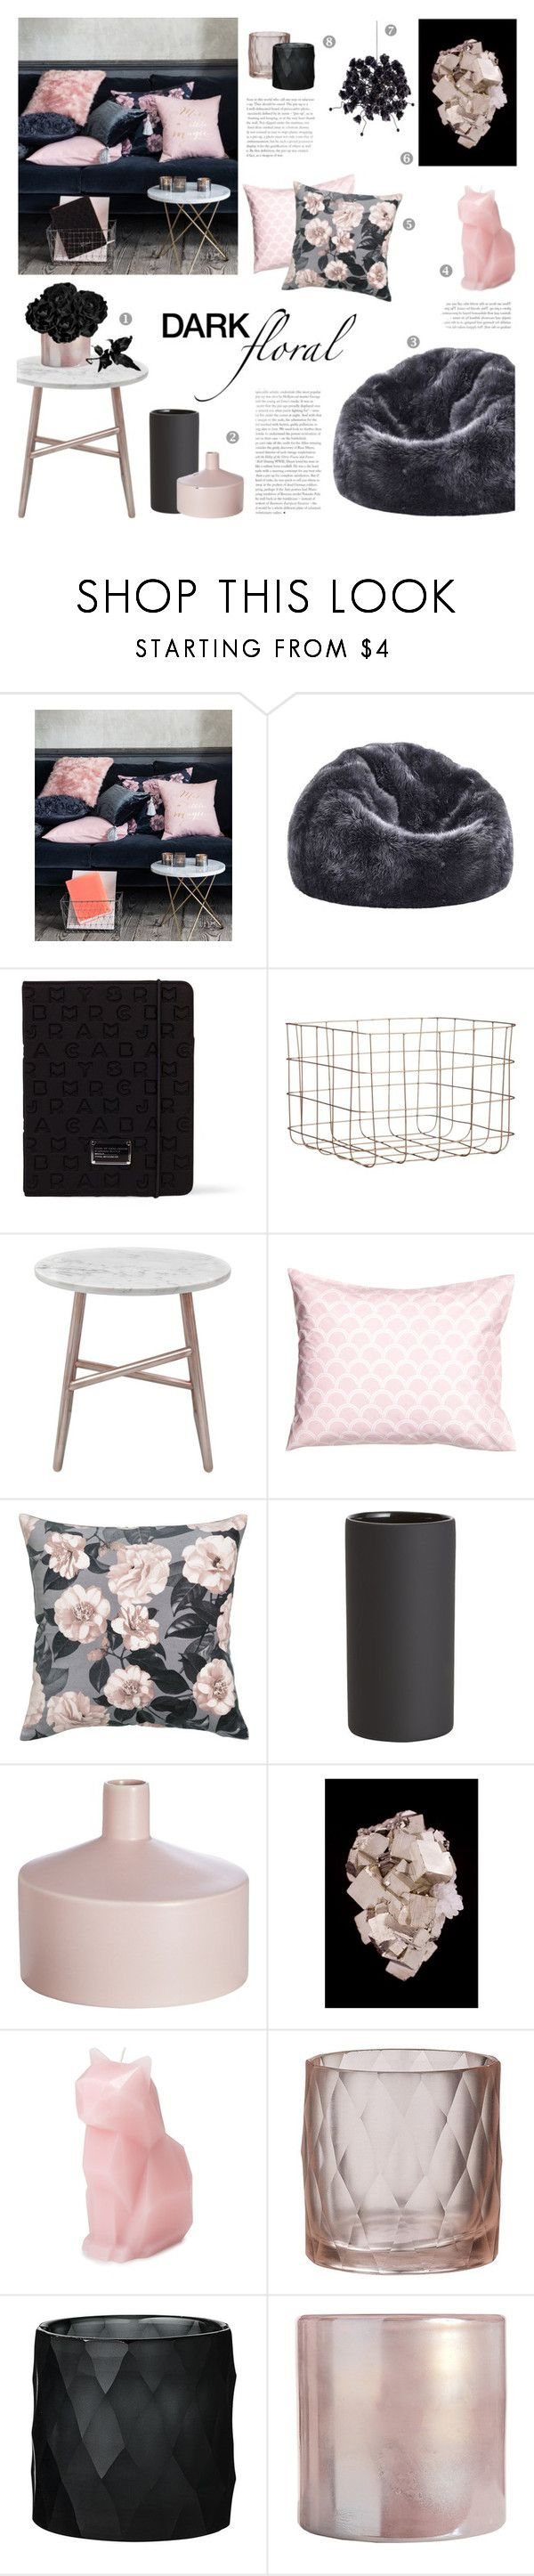 """Dark Floral"" by c-silla on Polyvore featuring interior, interiors, interior design, home, home decor, interior decorating, H&M, Dot & Bo, Marc by Marc Jacobs and CB2"